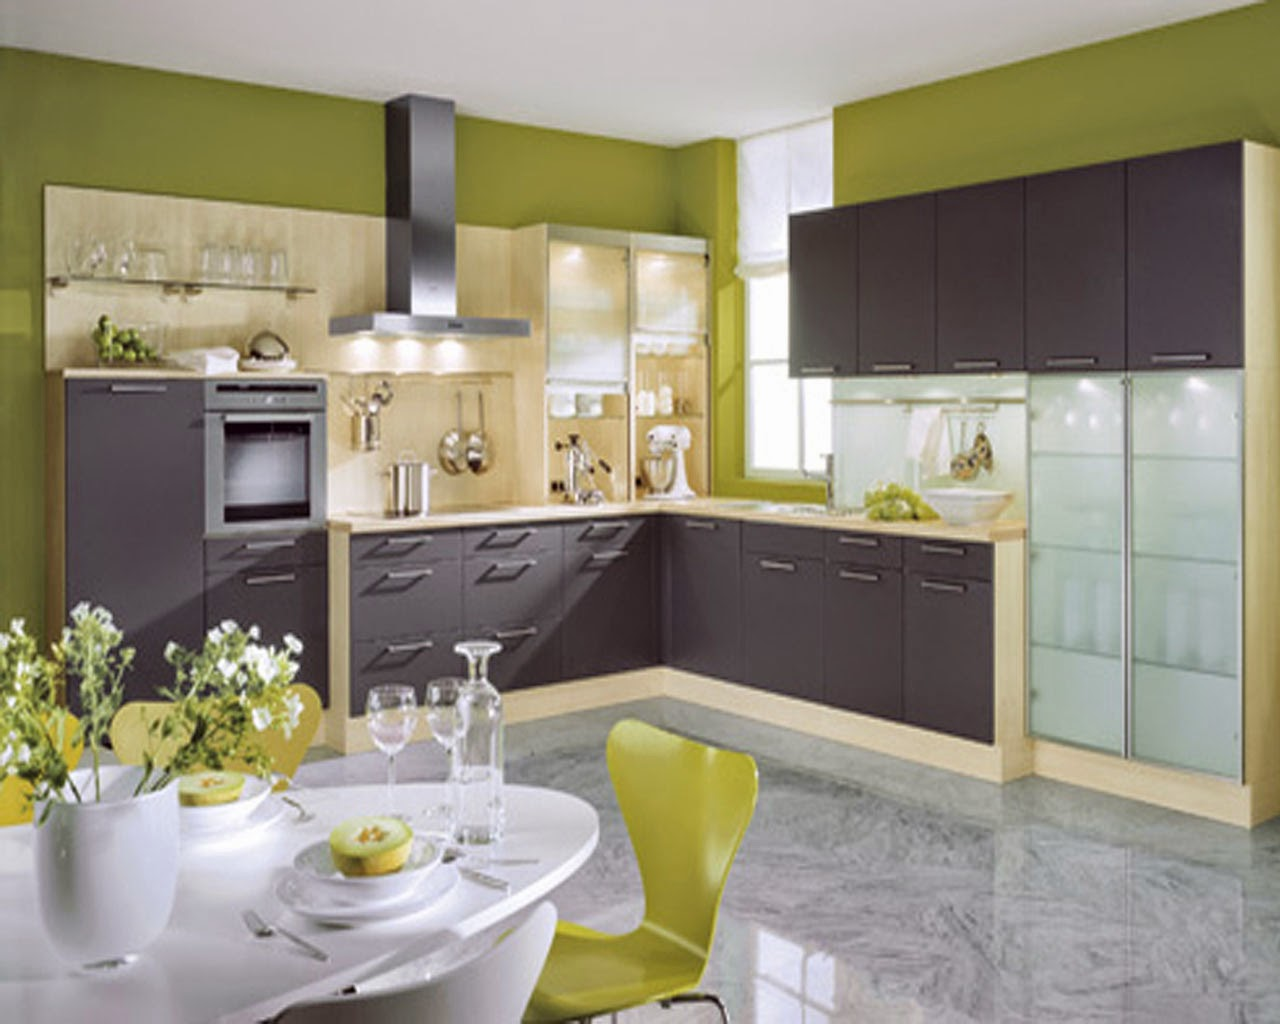 Kitchen designing ideas 2014 freshnist design for Kitchen designs and layout